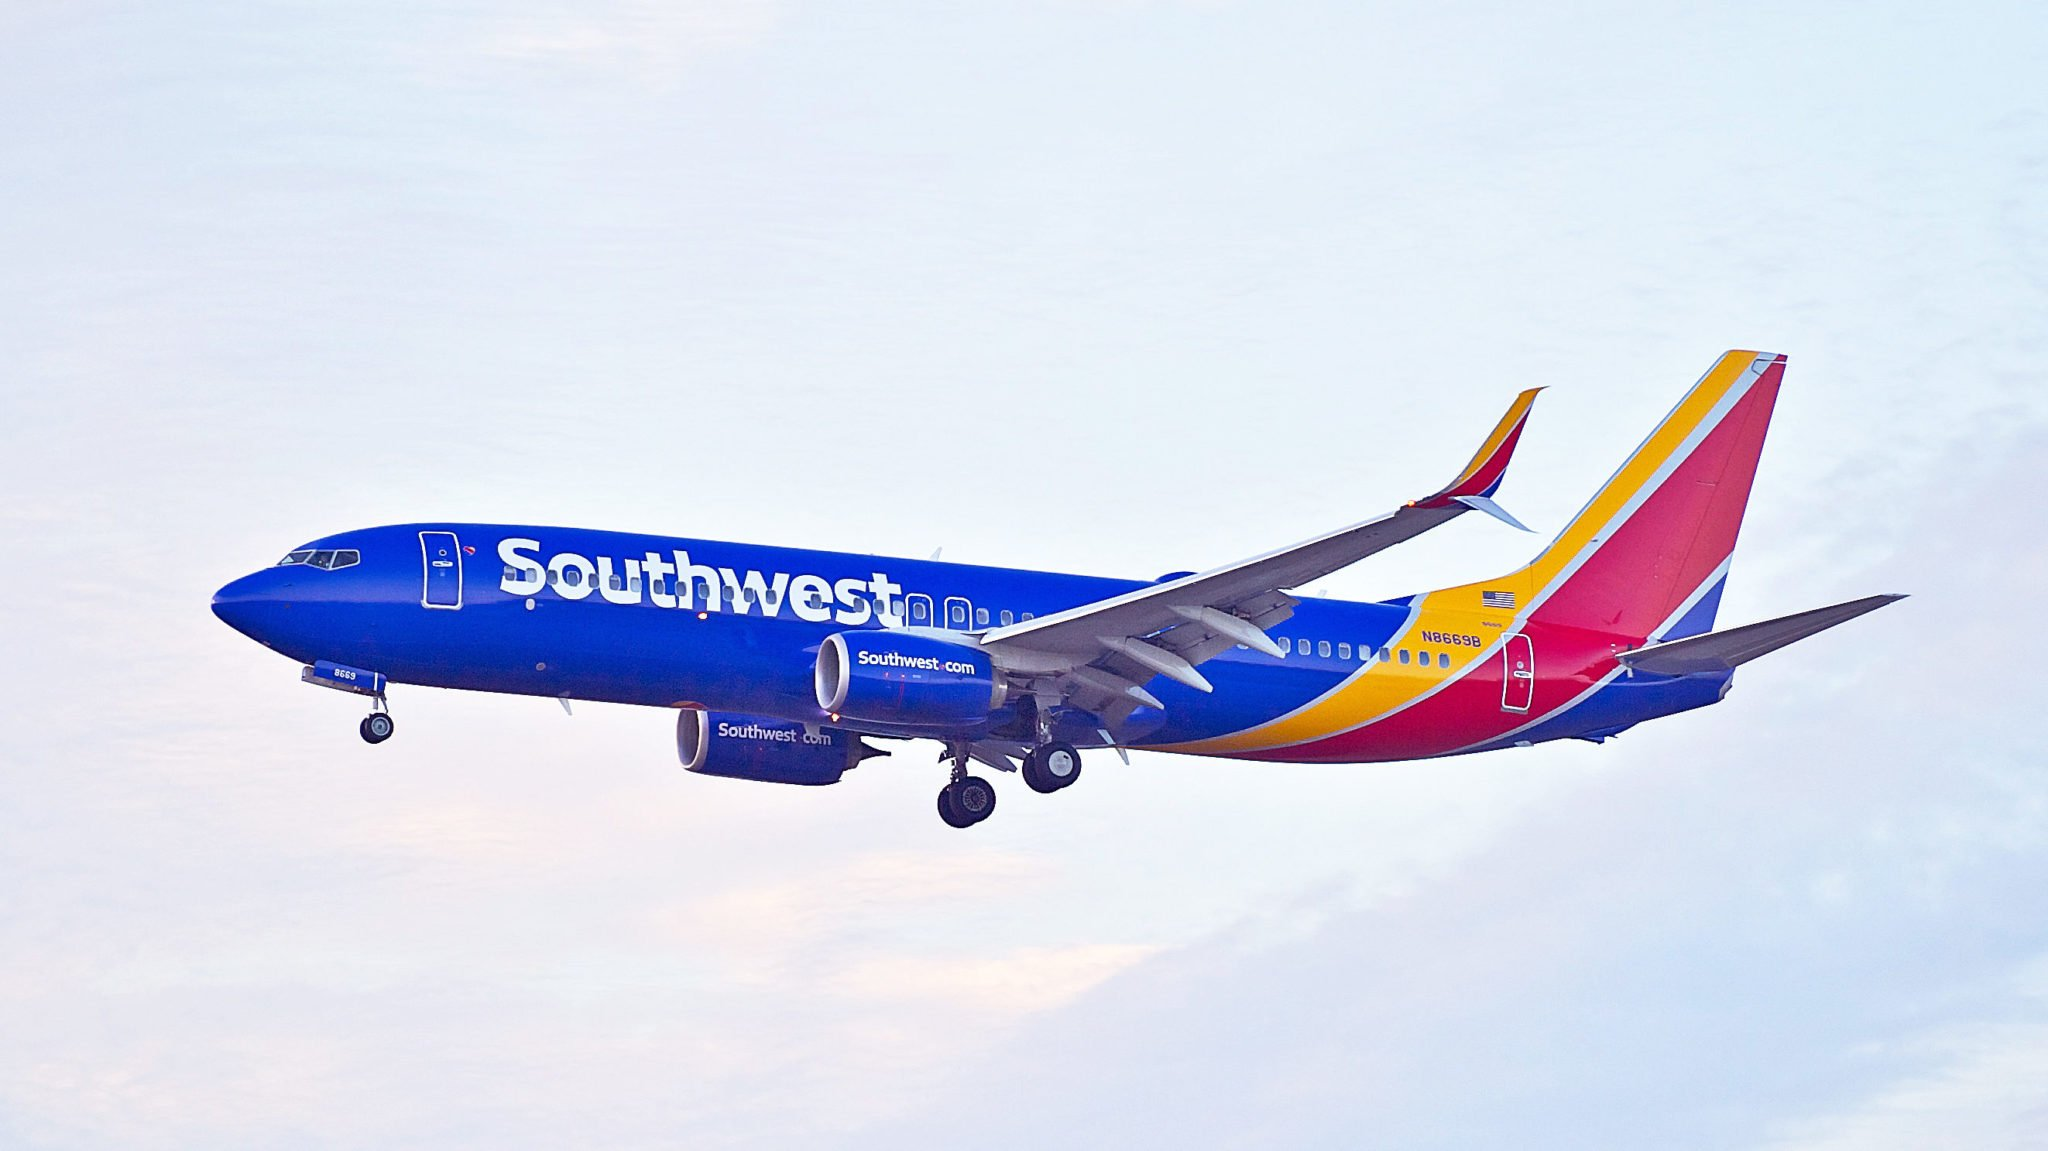 southwest airlines service Understand what southwest airlines' competitive advantages are and how they manage to edge out other airlines.